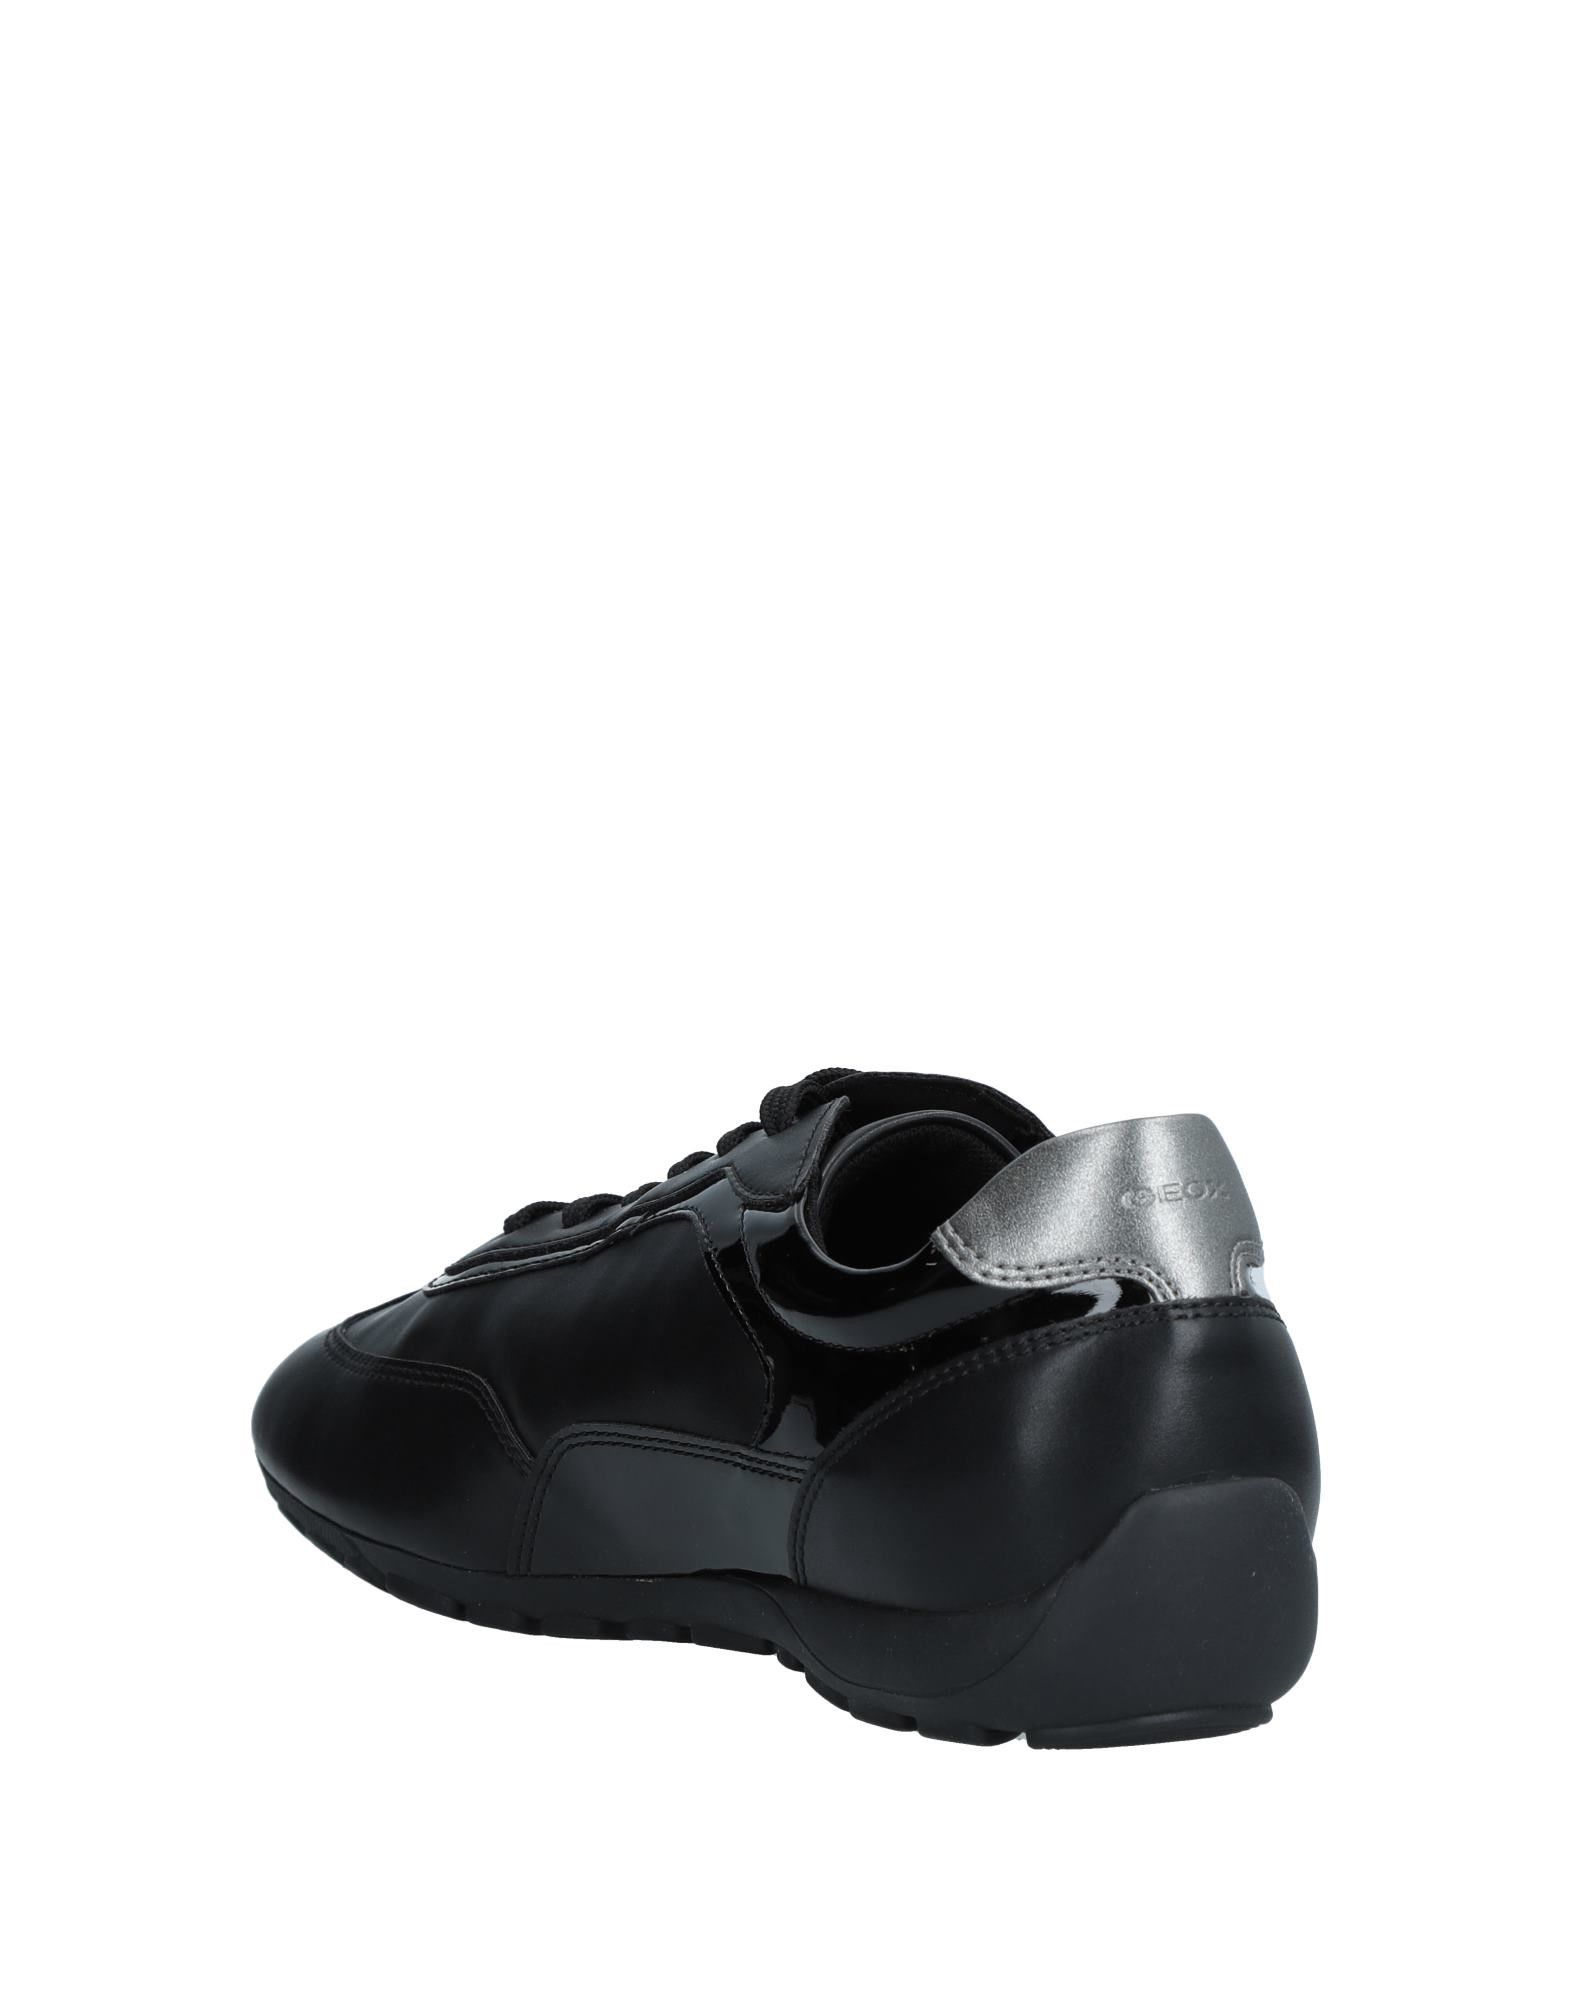 Geox Sneakers - Women Women Women Geox Sneakers online on  United Kingdom - 11540872HS 9e5703